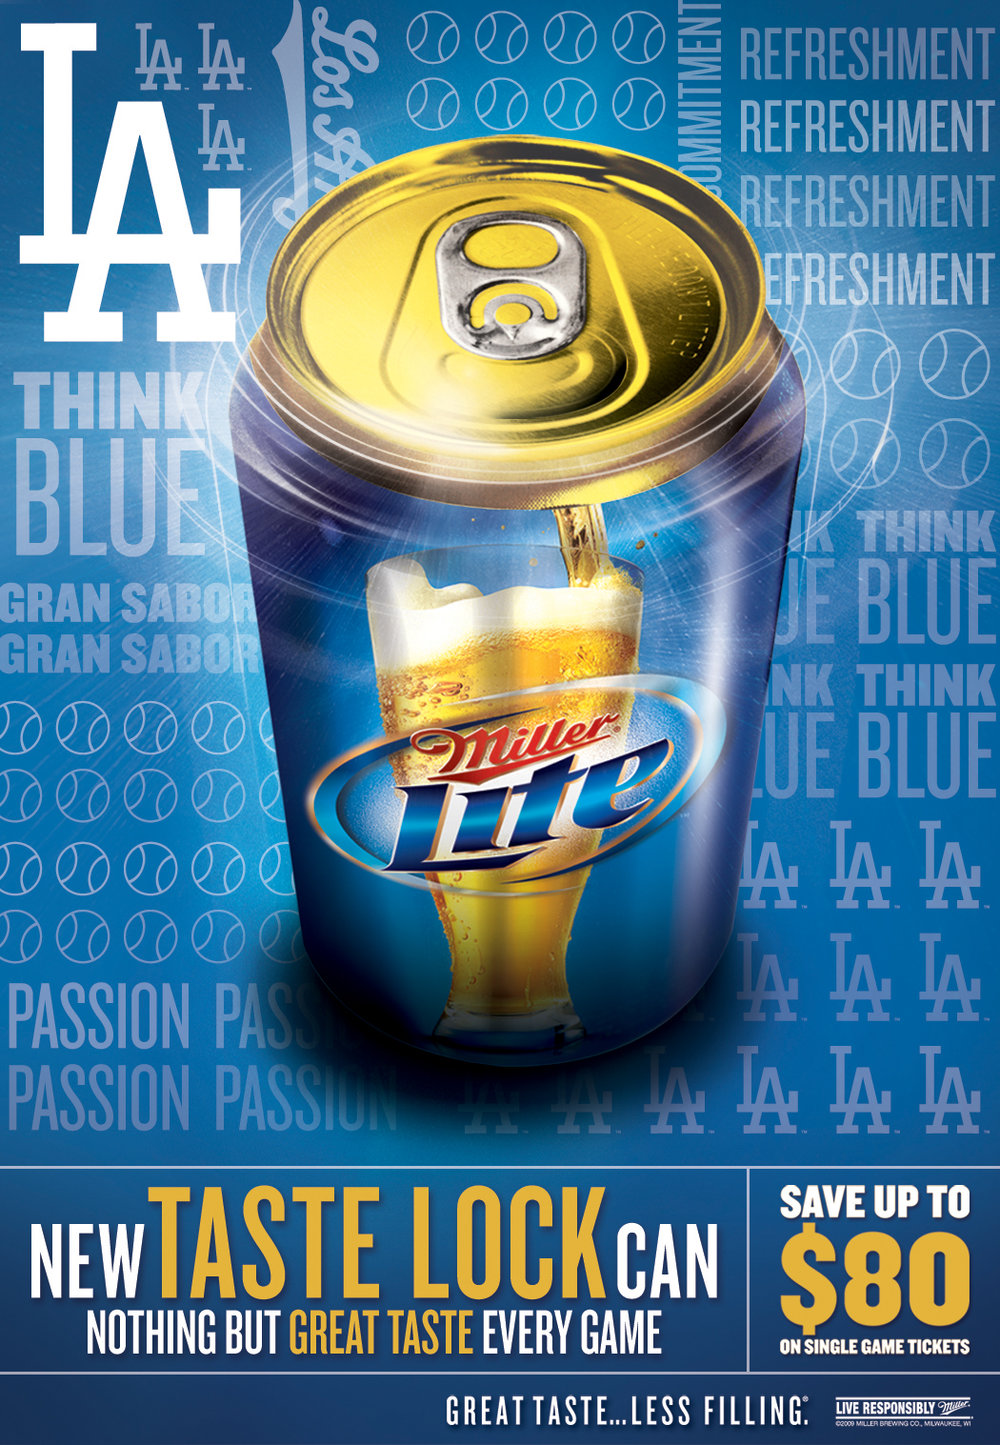 Miller Lite sponsorship in-store and bar signage